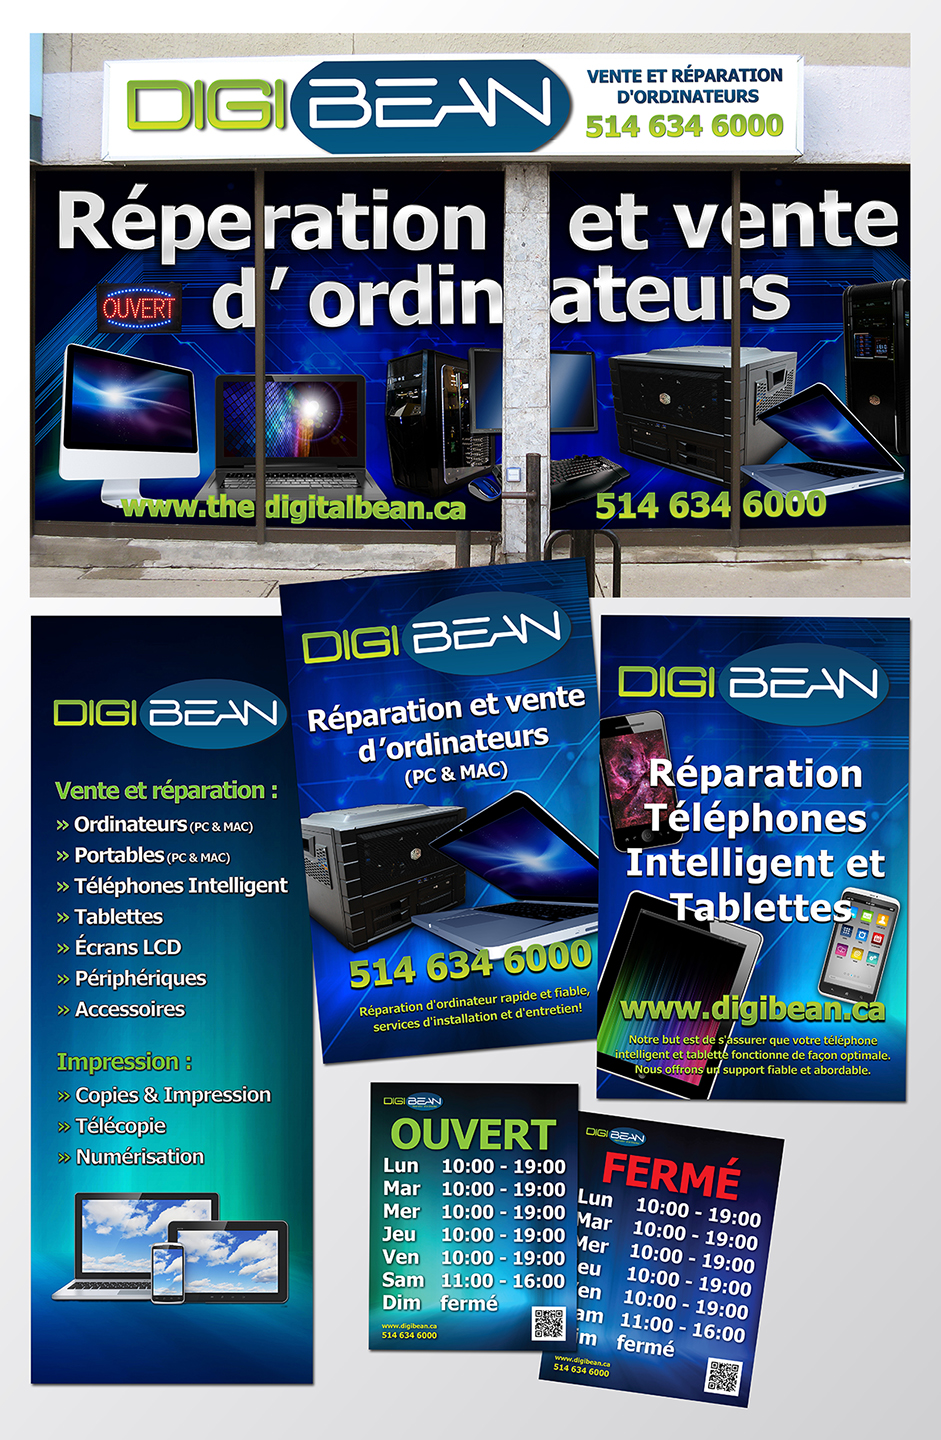 DigiBean Store Front & Posters